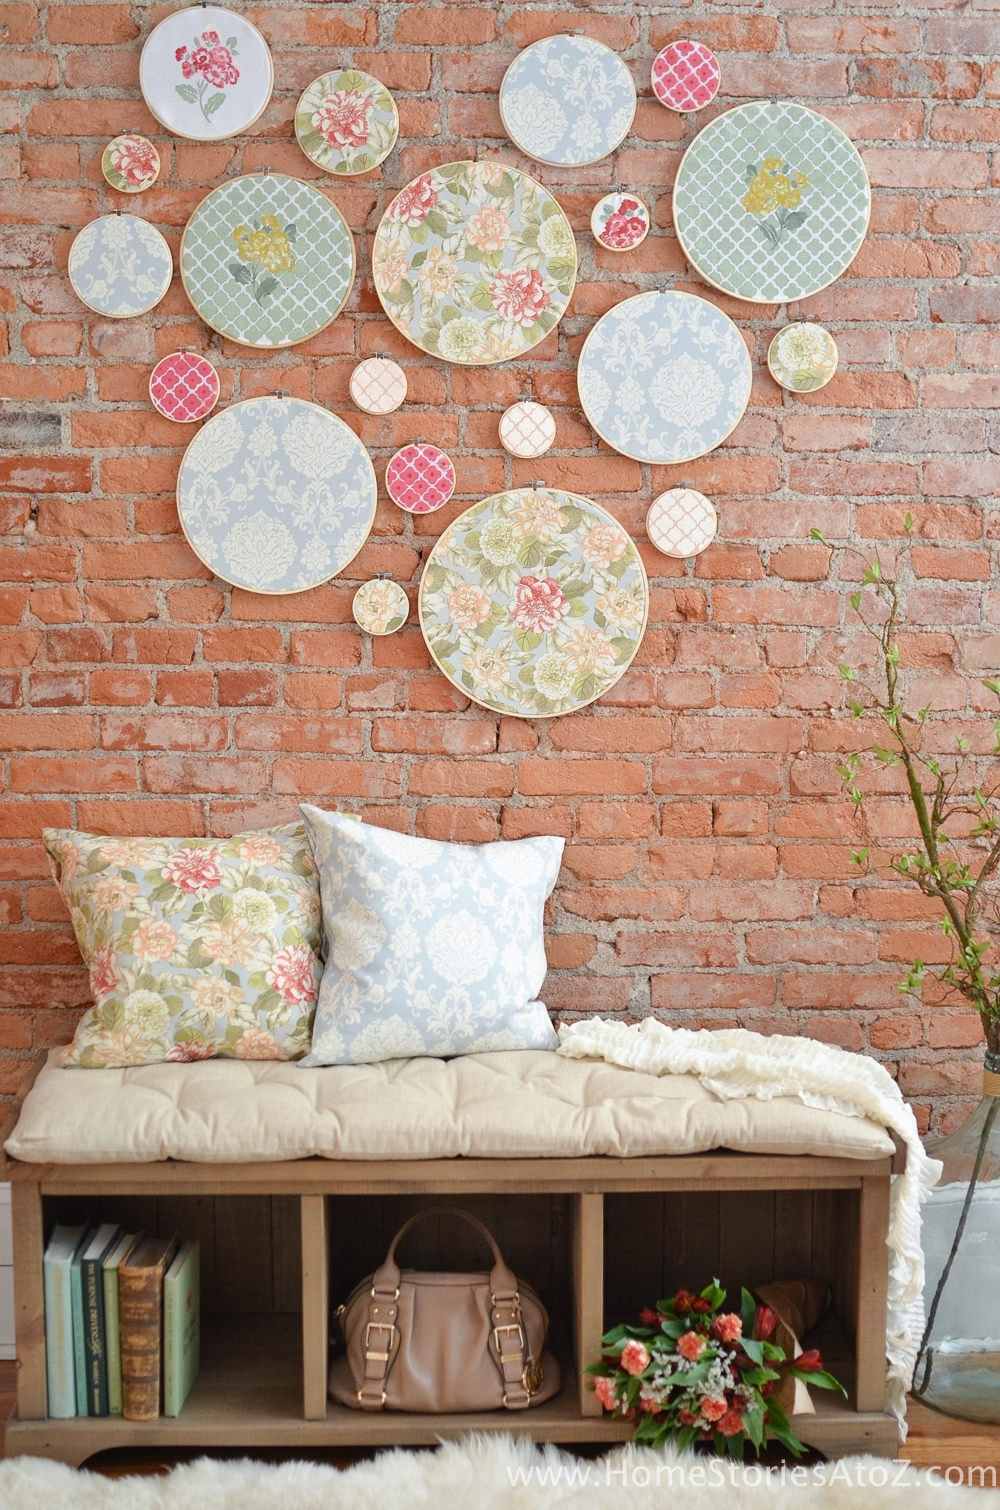 Diy Embroidery Hoop Wall Art – Home Stories A To Z Inside Recent Fabric Hoop Wall Art (View 5 of 15)